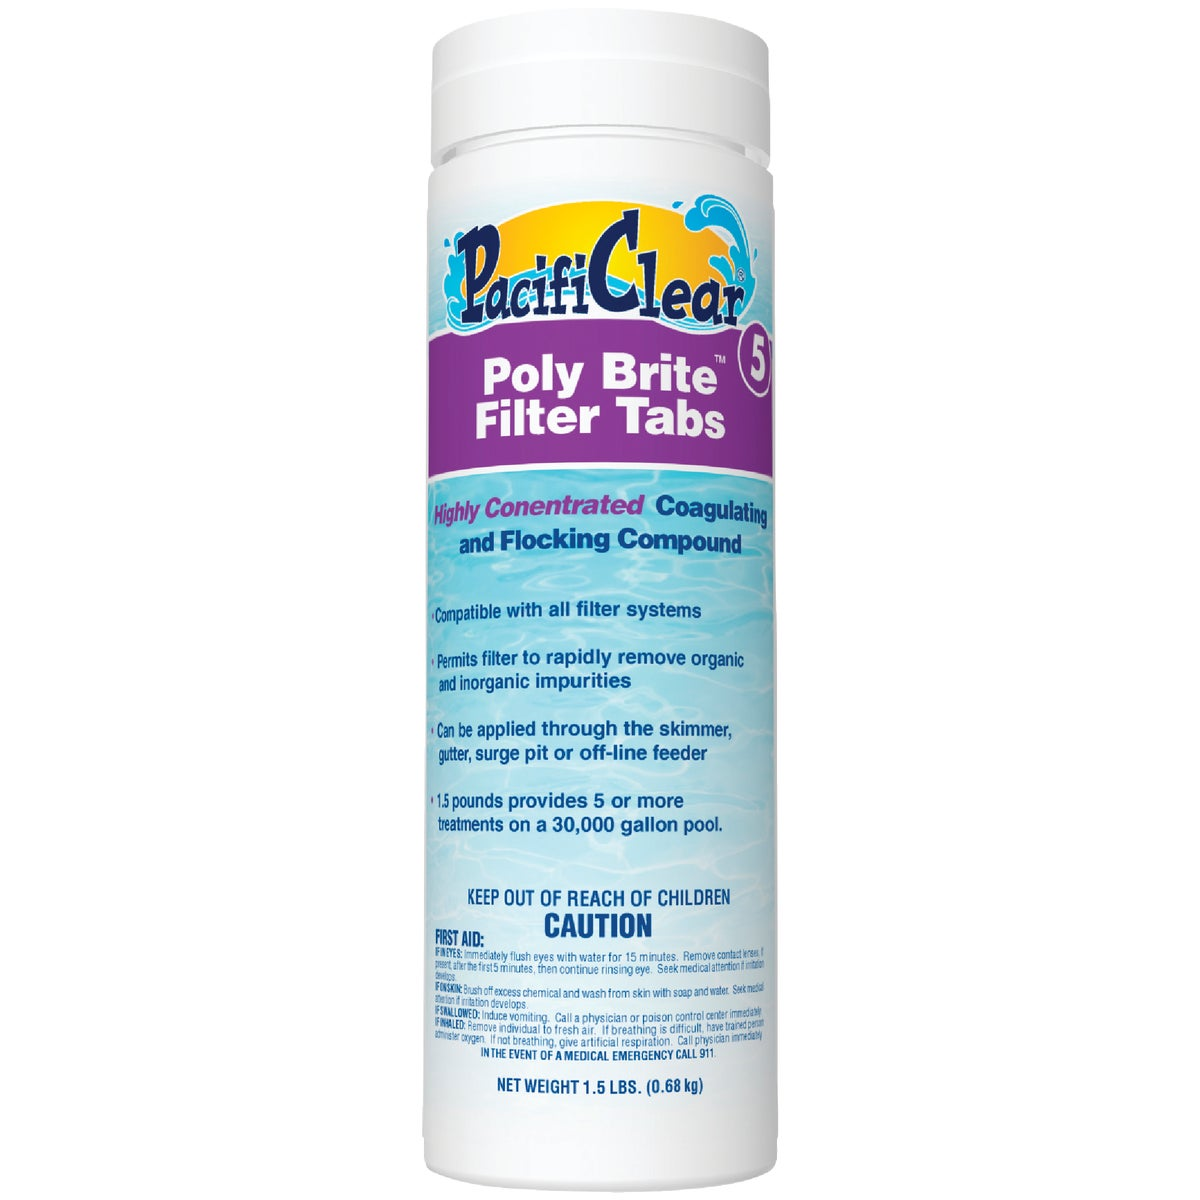 POLY-BRITE FILTER TABS